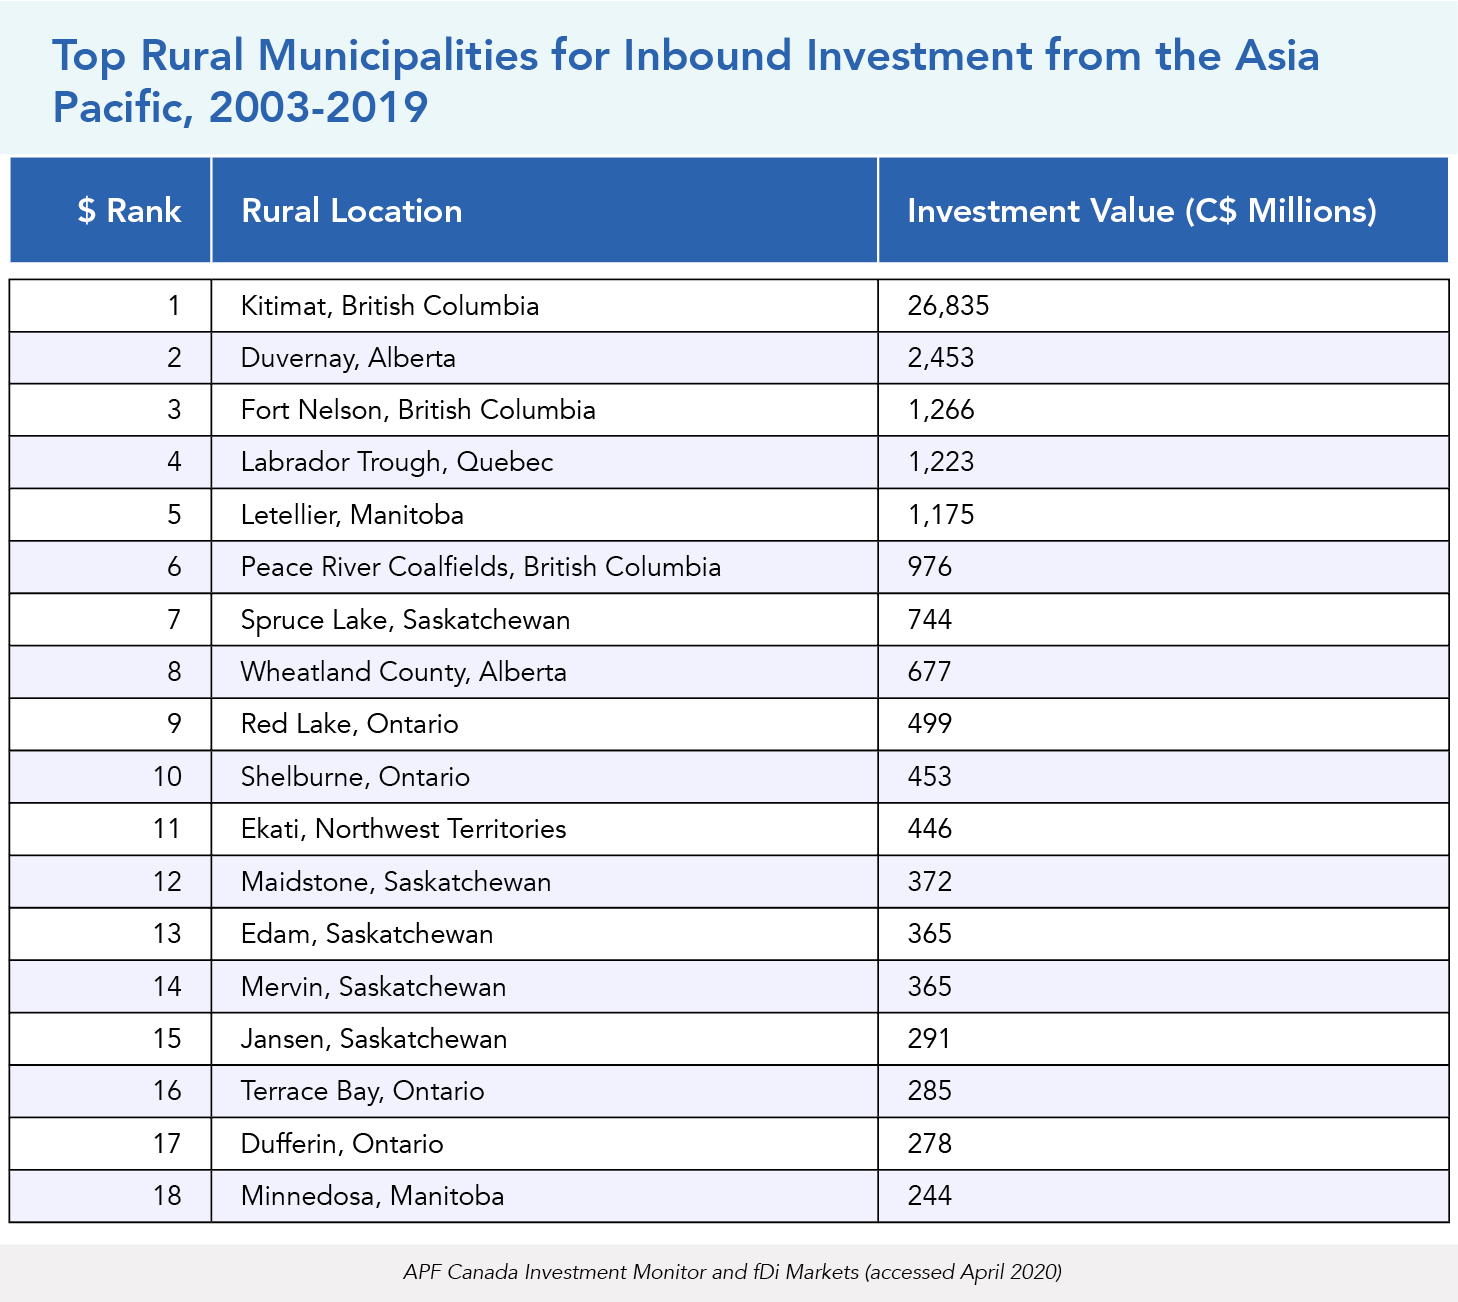 Top Rural Municipalities for Inbound Investment from the Asia Pacific, 2003-2019